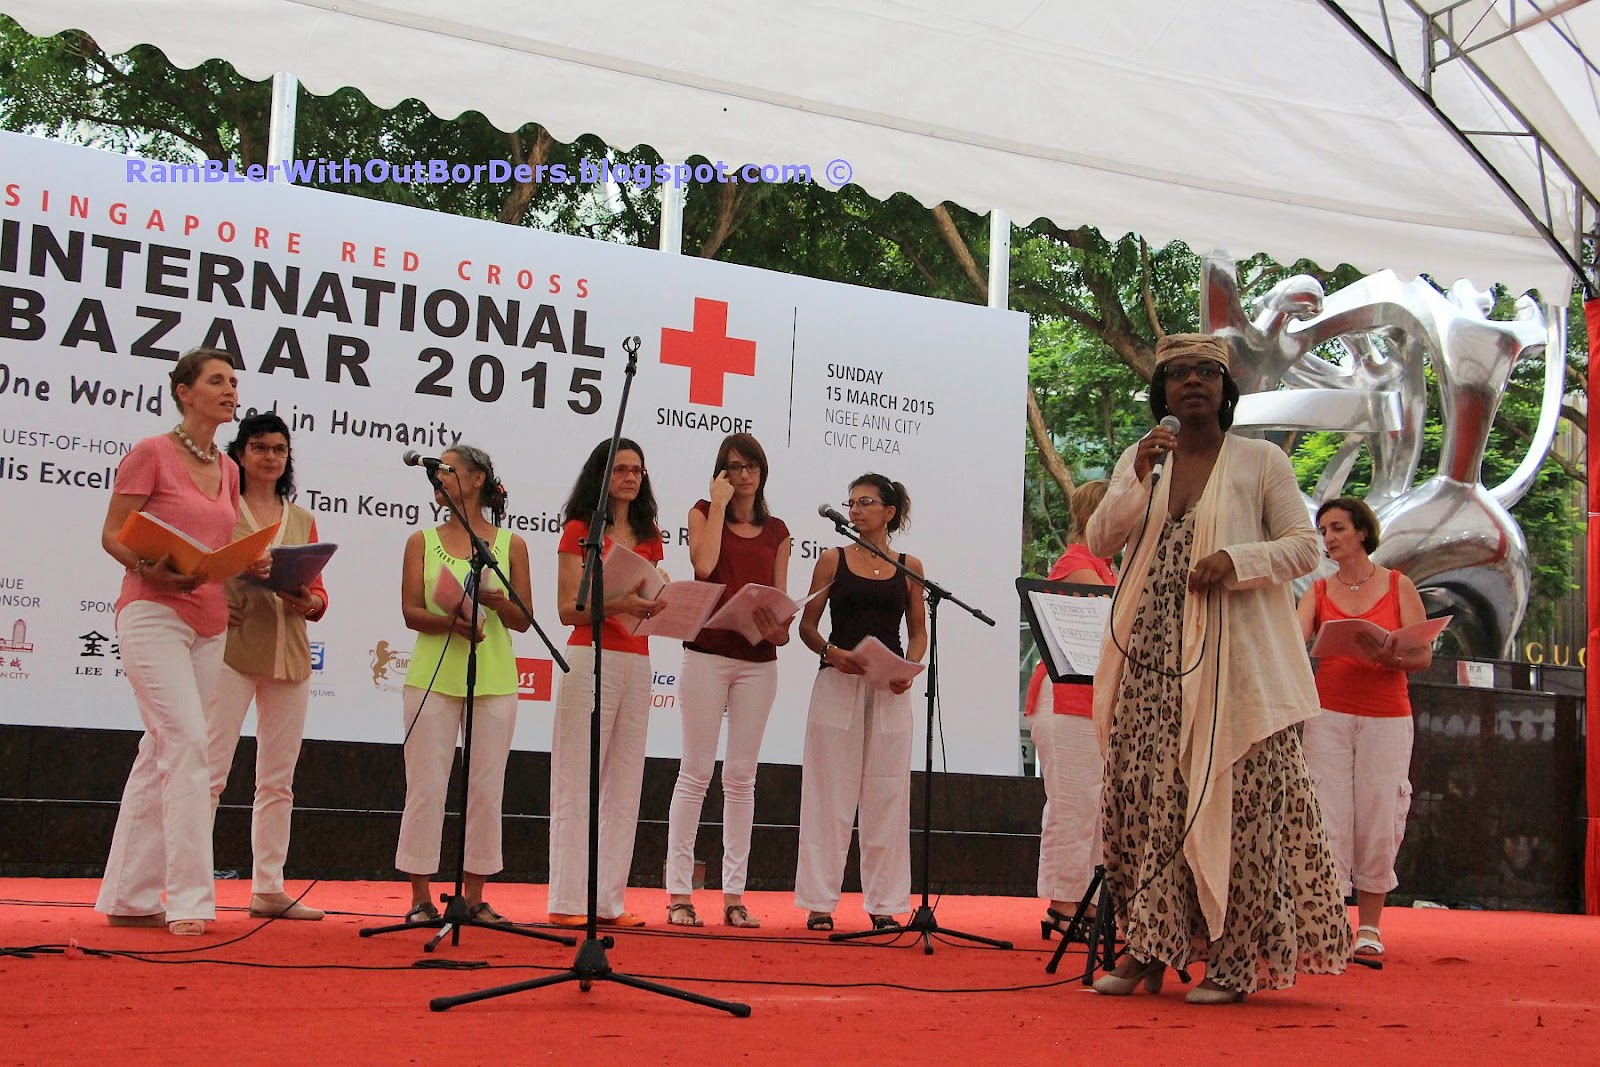 Christian Choir, Singapore International Red Cross Bazaar 2015